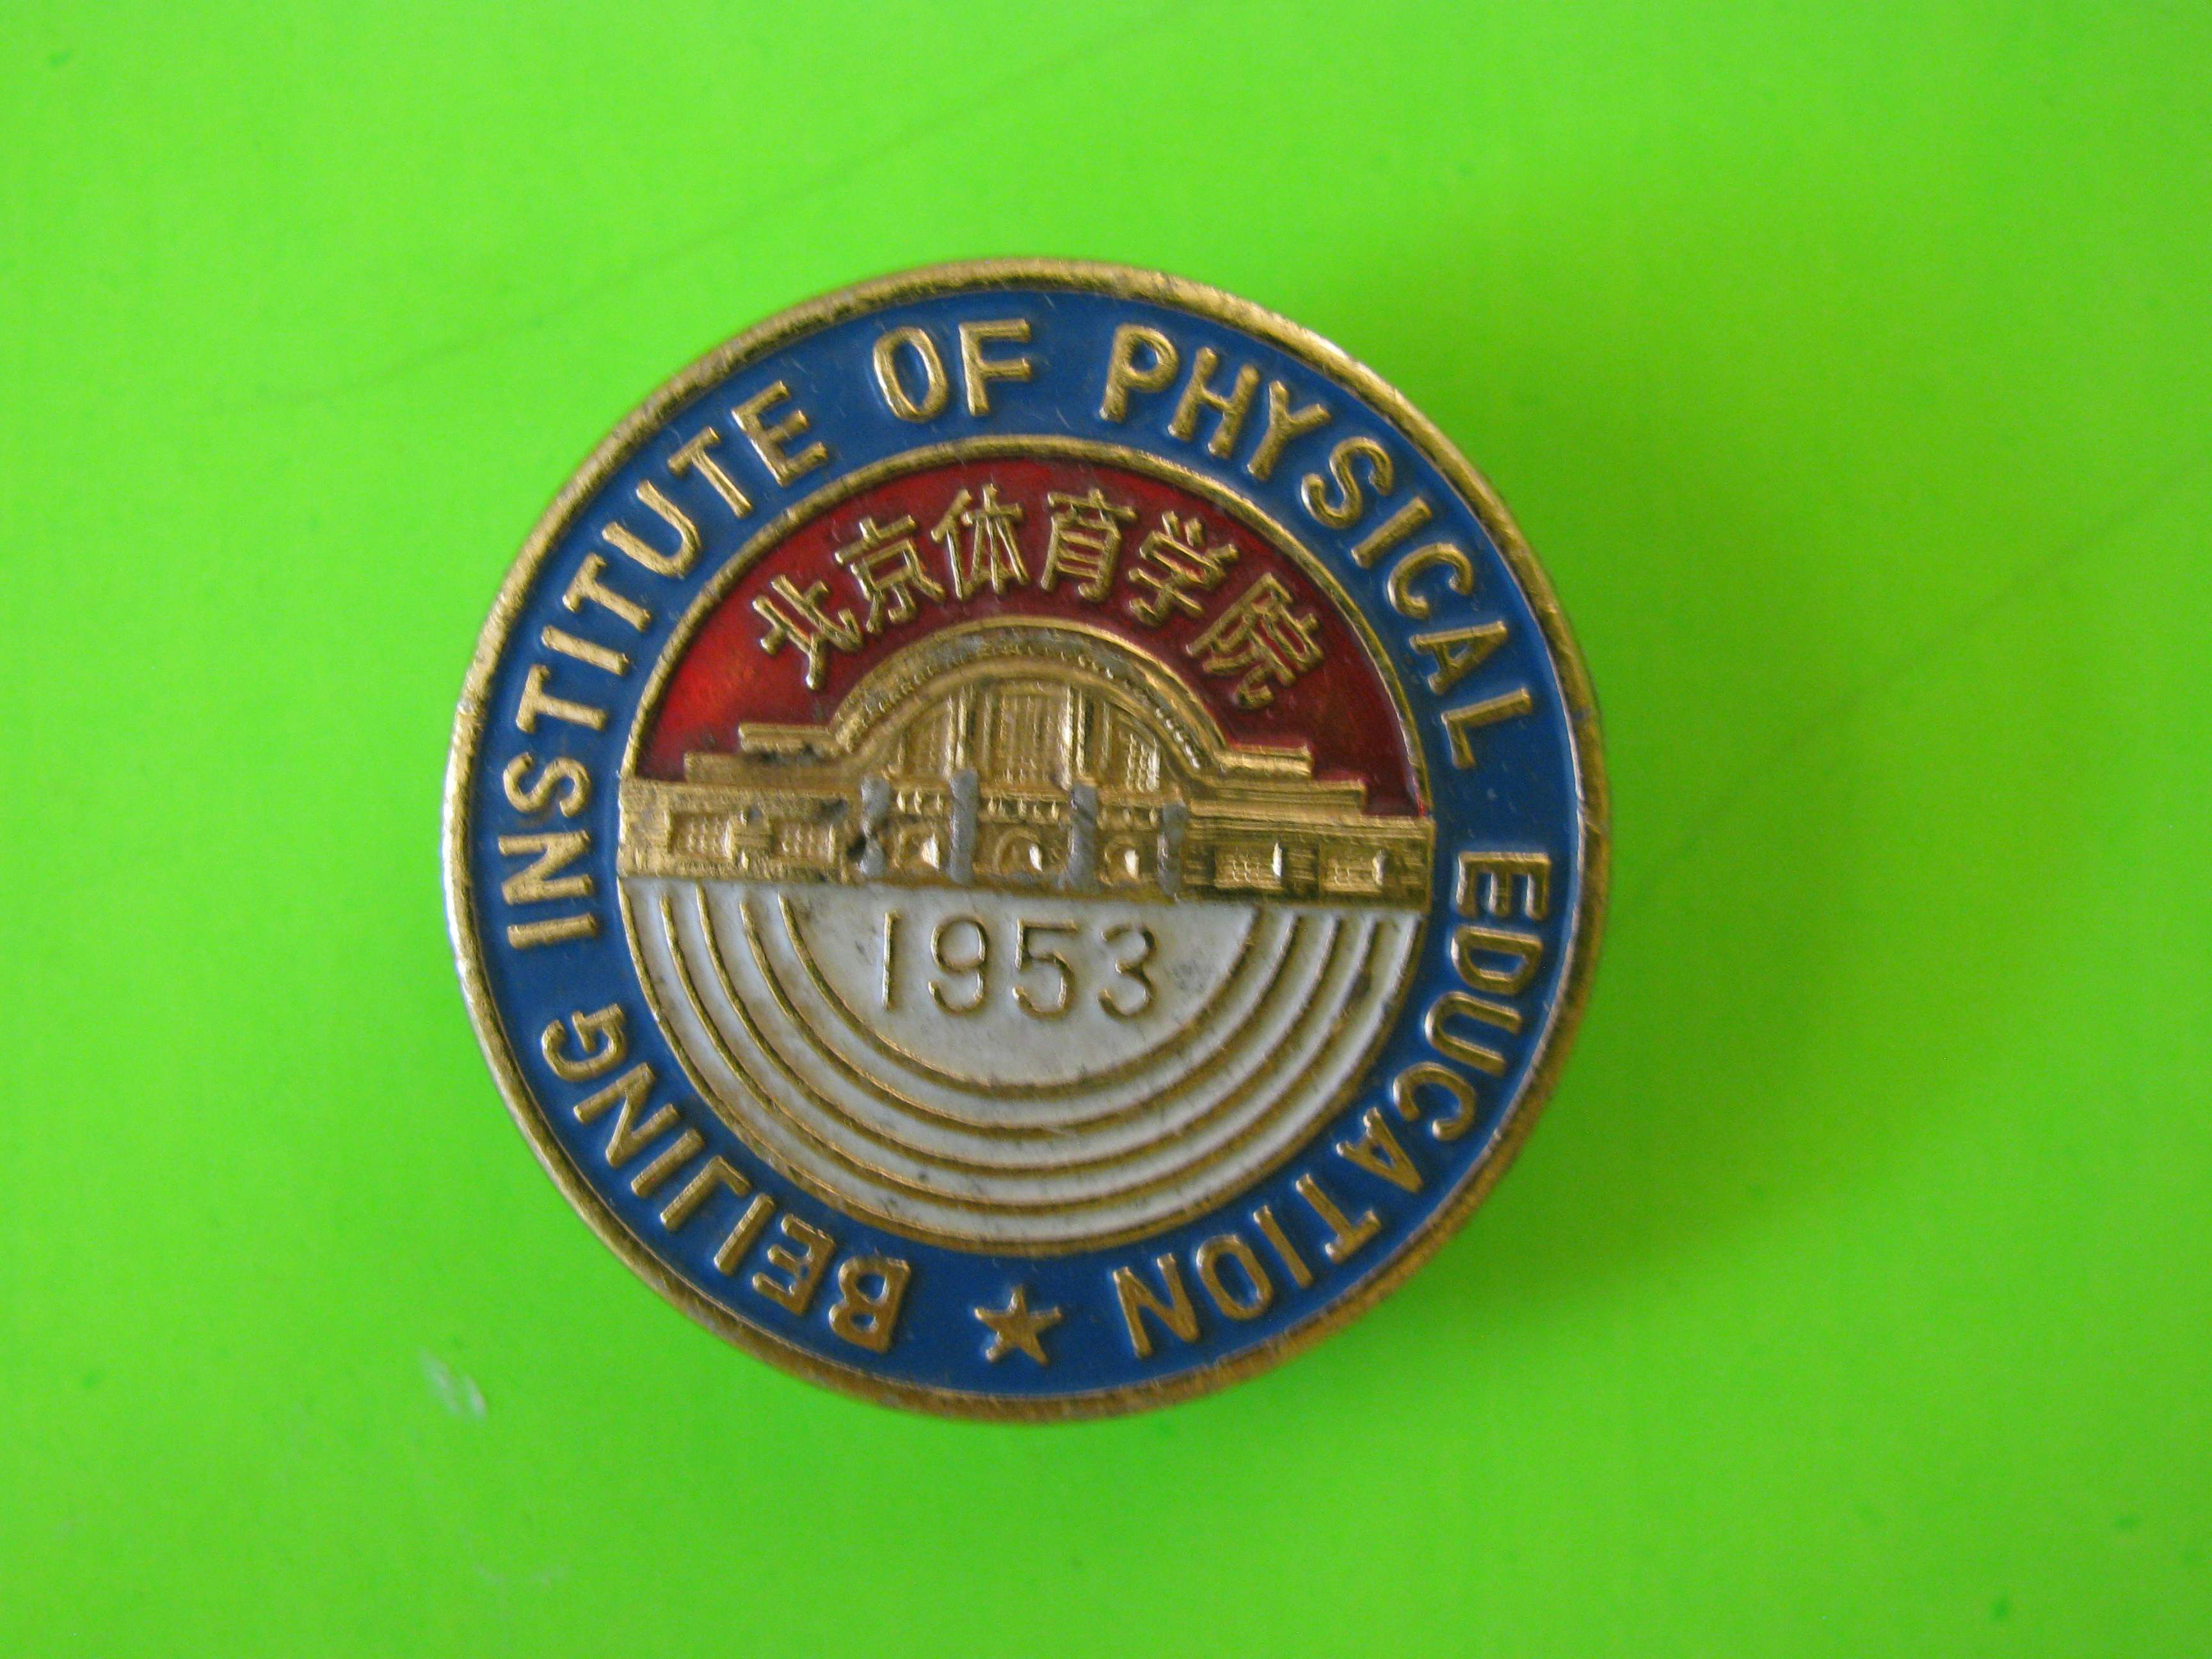 Beijing Institute of Physical Education Metal Button with Metal Loop Shank